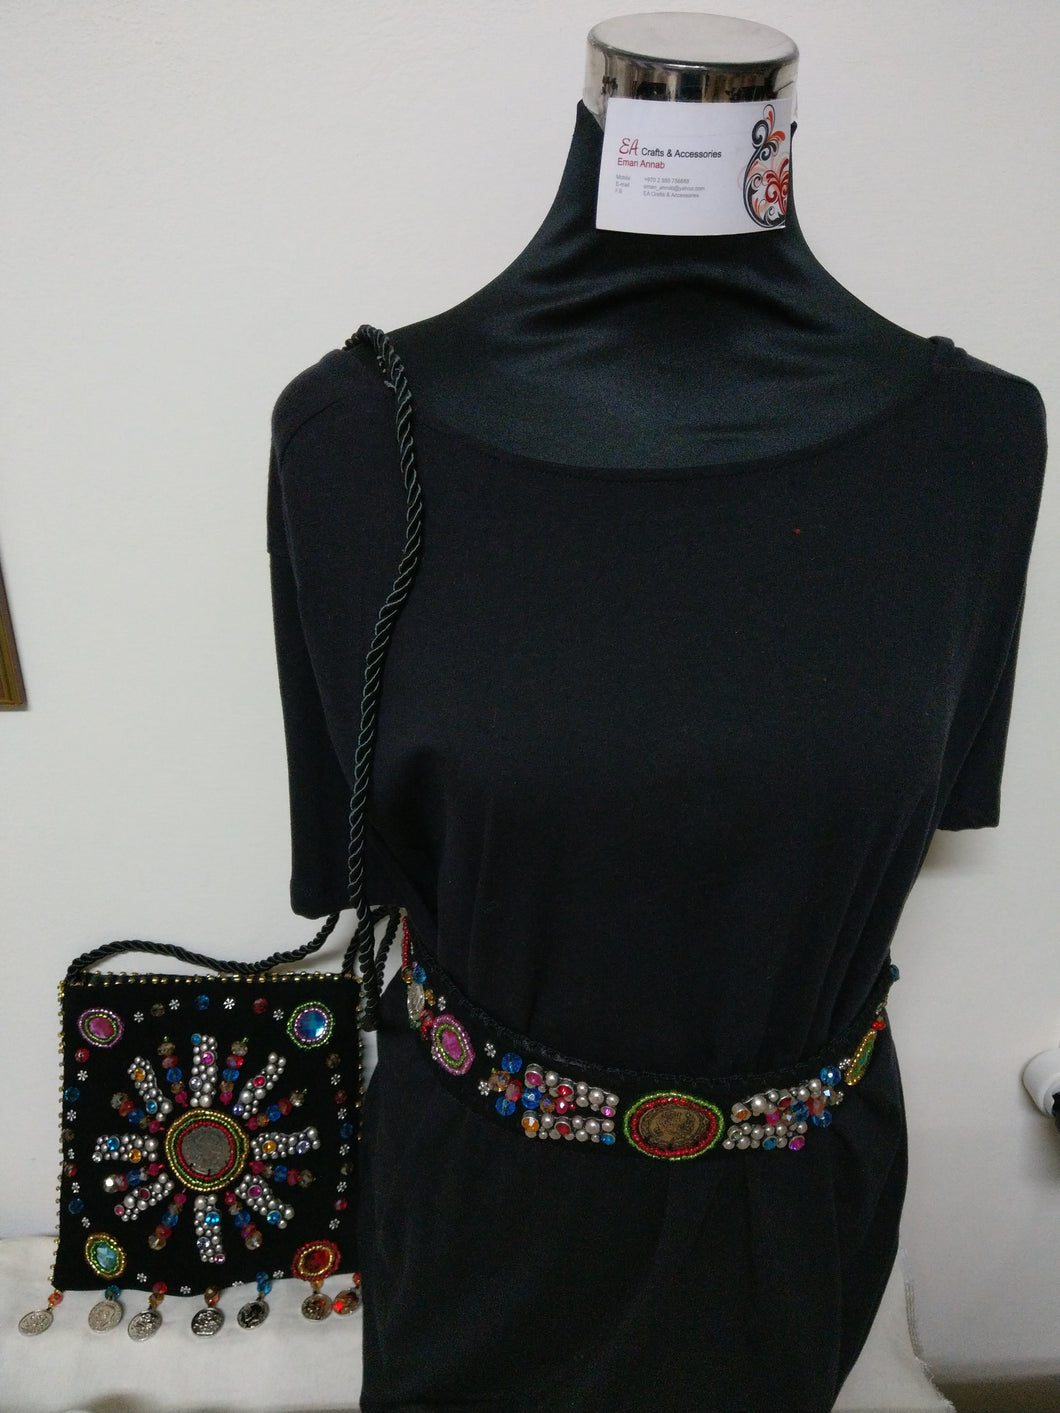 Handmade boho style handbag and belt set - Falastini Brand